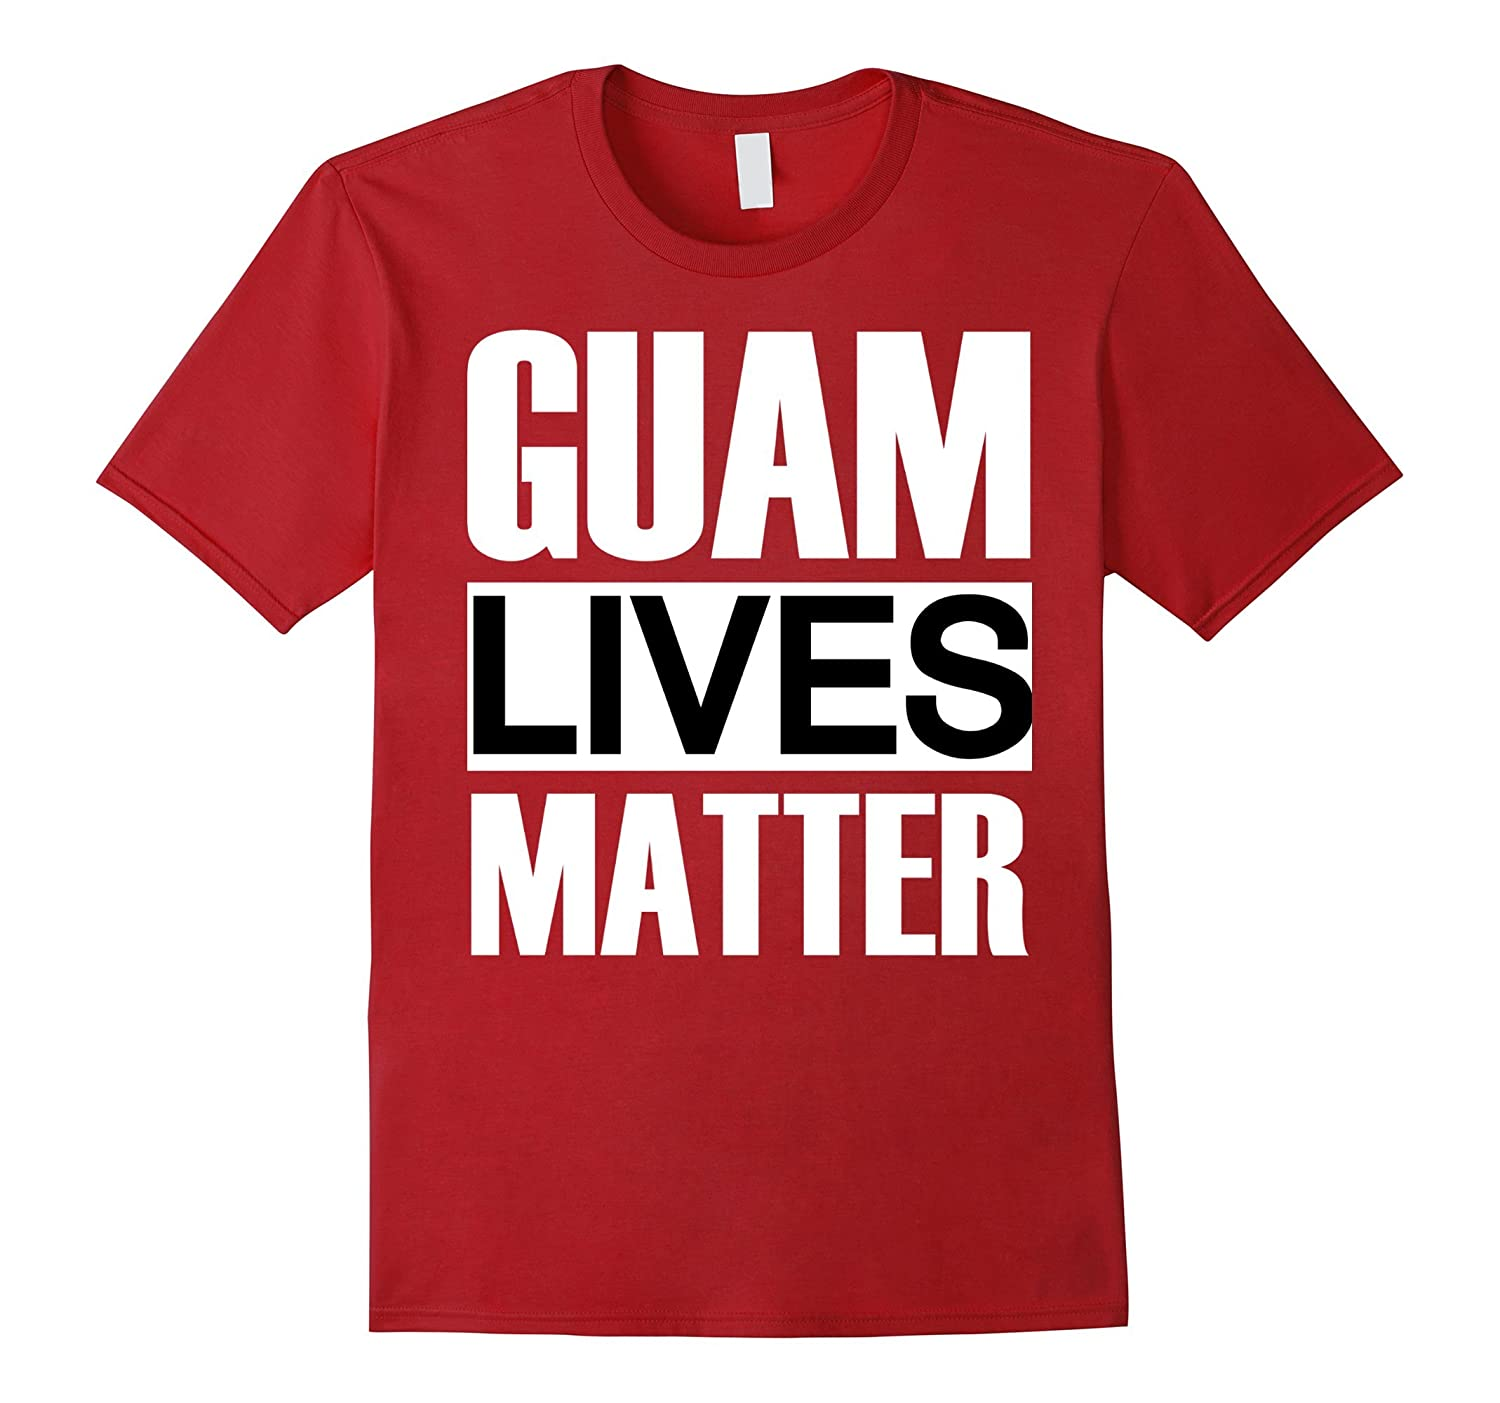 671 Guam Lives Matter Tshirt because Guam is part of the USA-Art